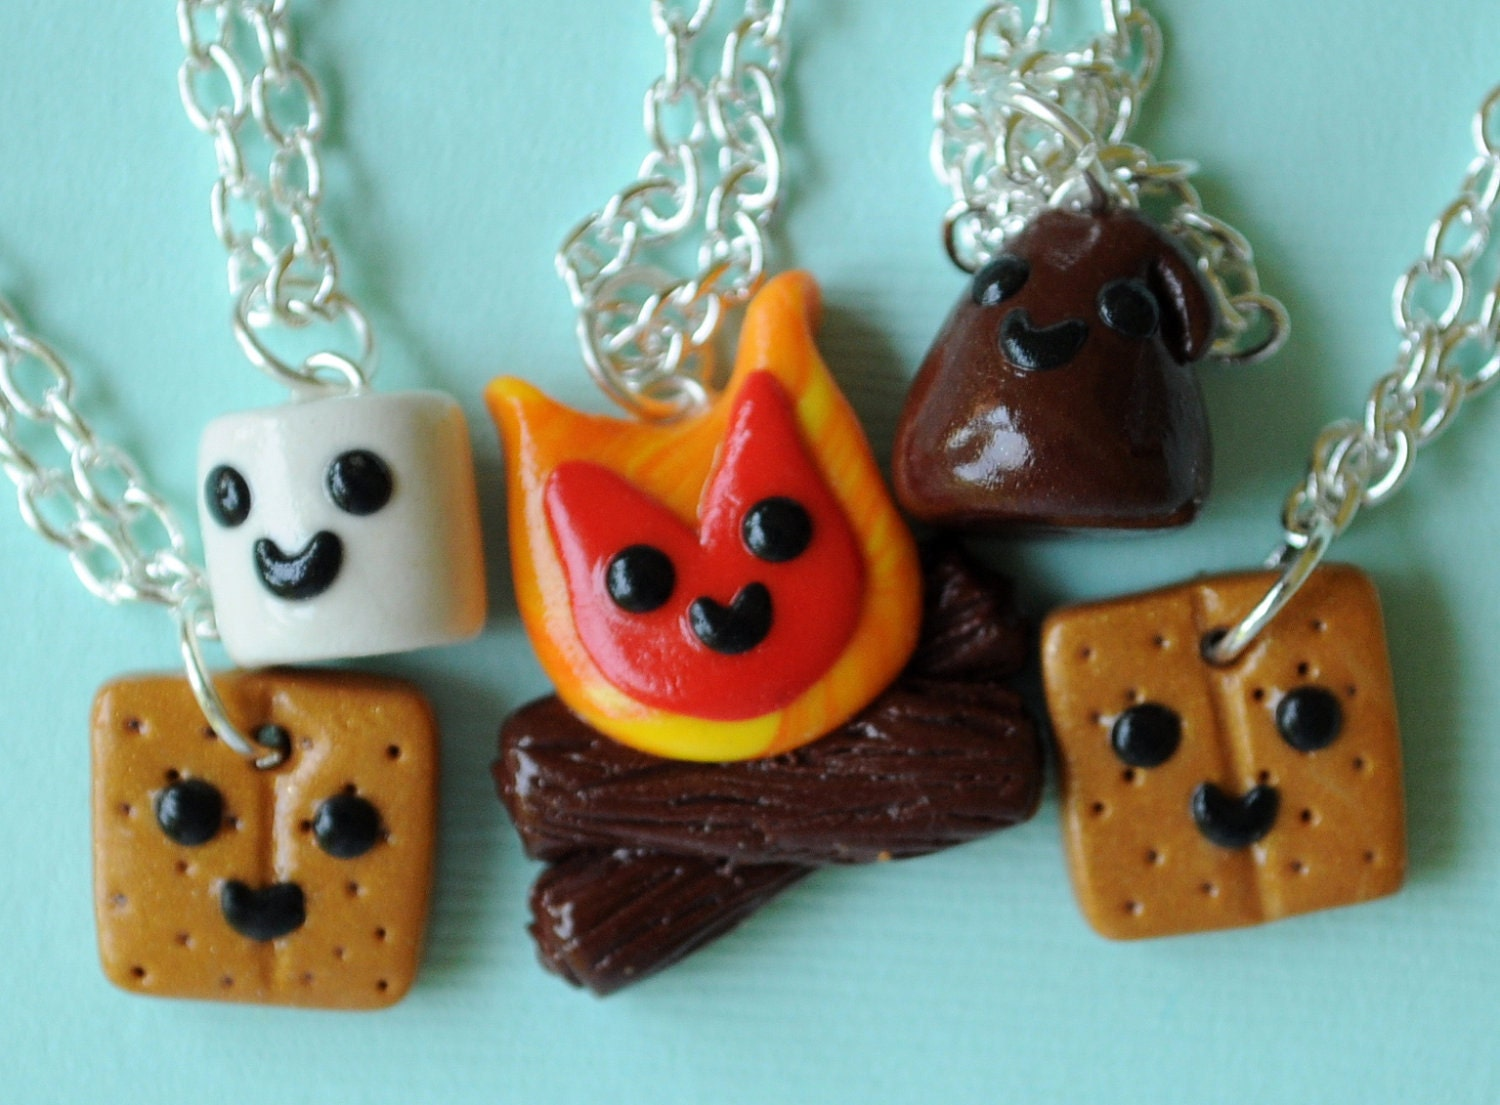 Kawaii 5 Way Smores And Campfire Best Friend By